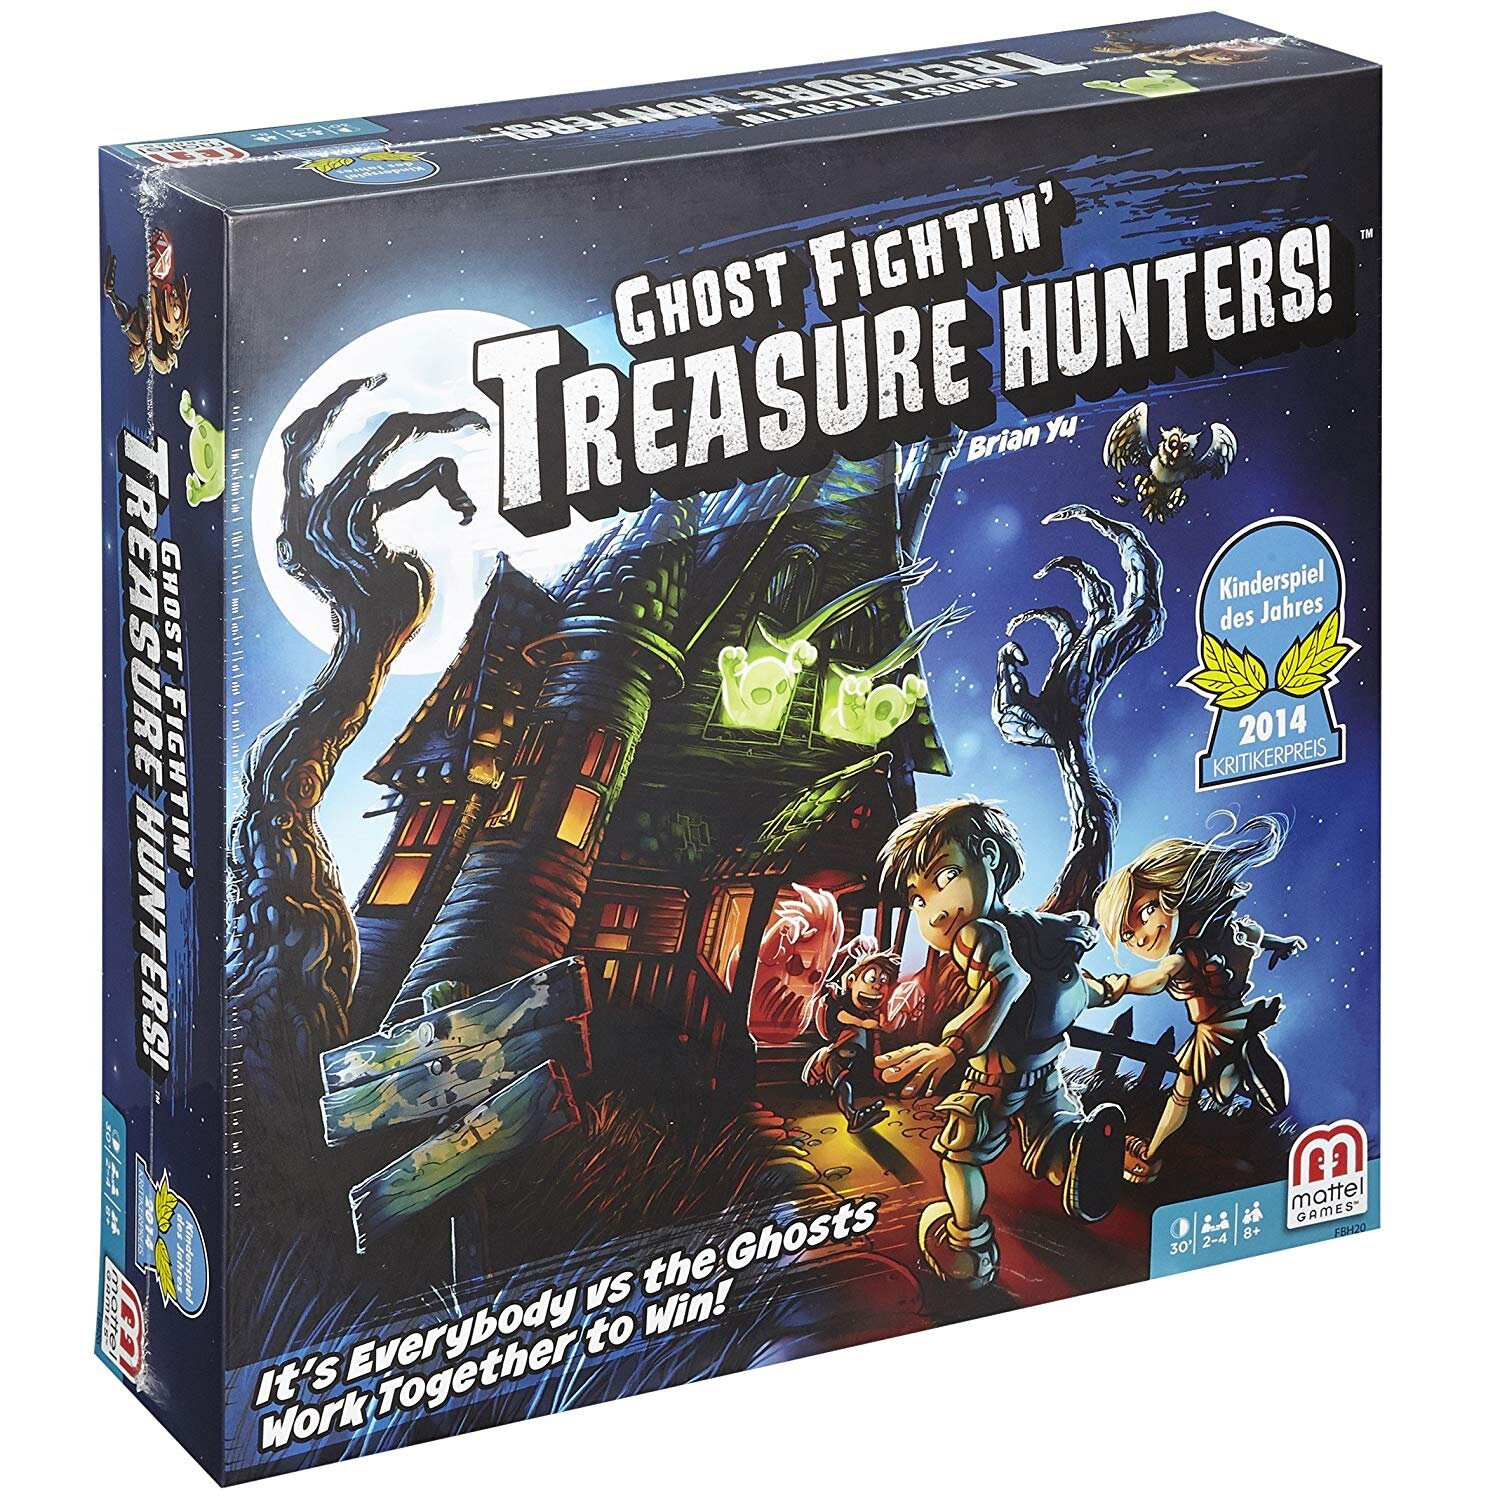 the best ghosts in family board games - Ghost Fightin' Treasure Hunters.jpg